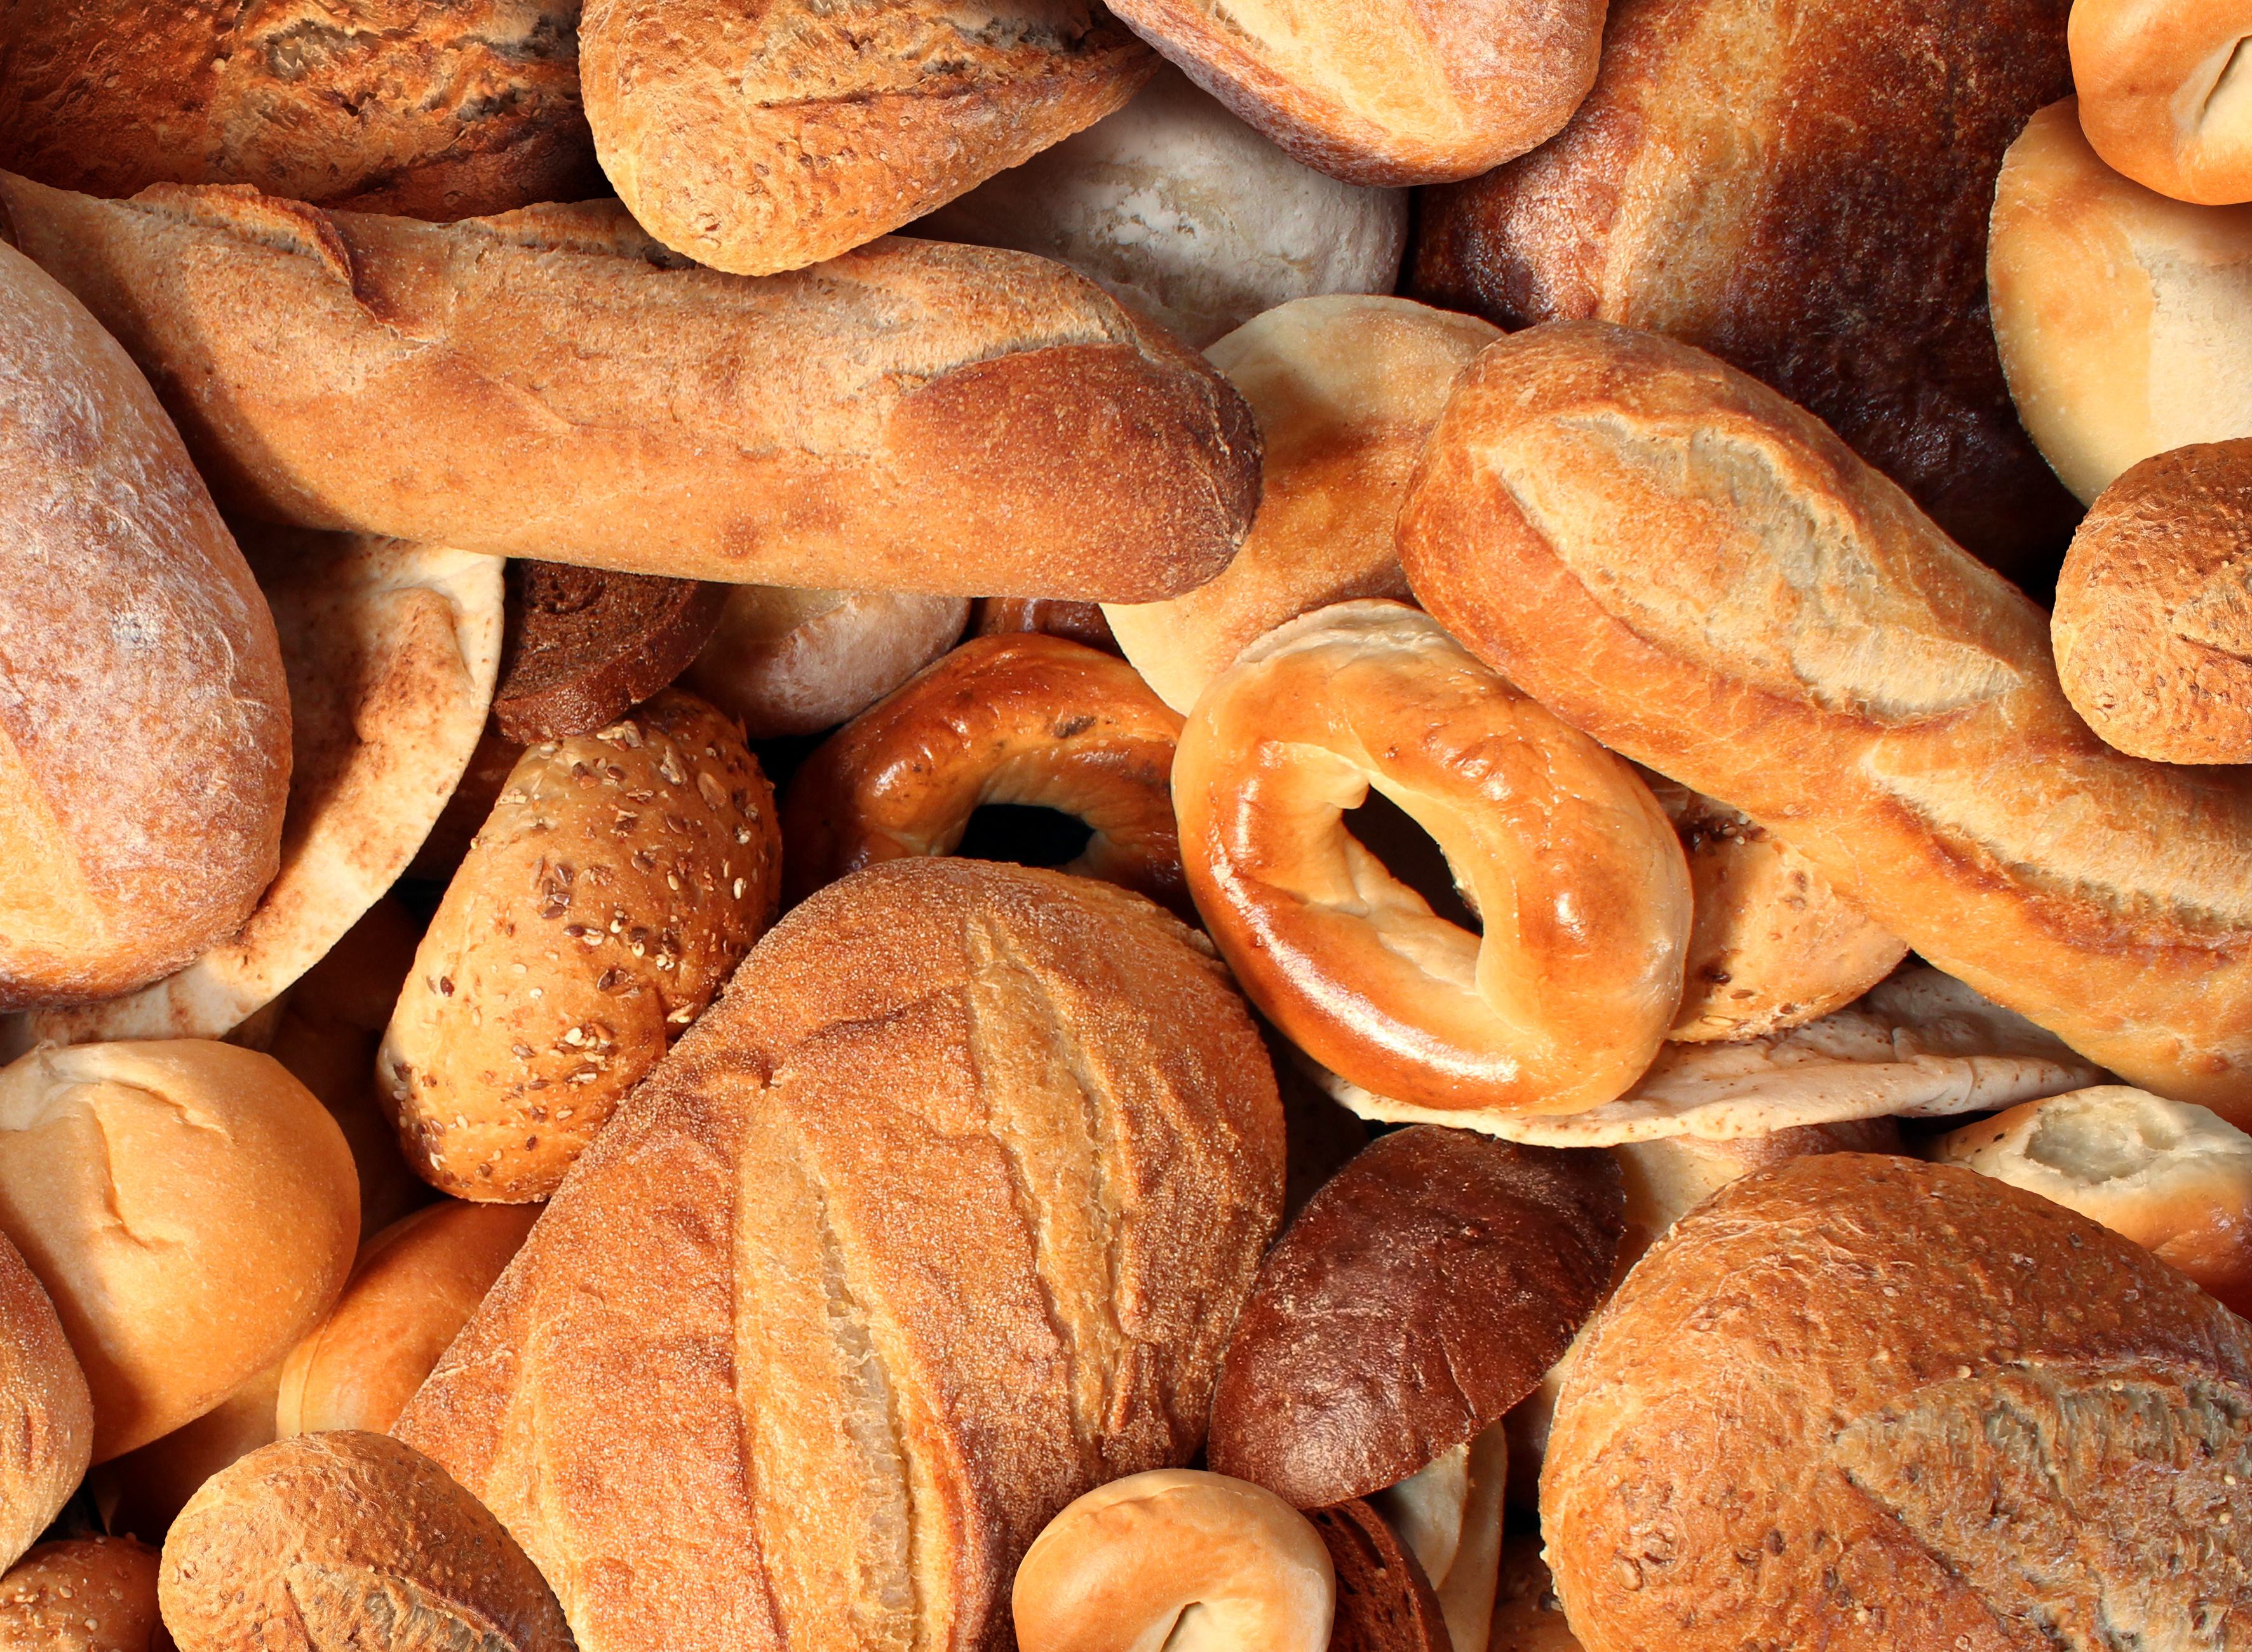 Piping Rock - The Pipe Line - What Foods Contain Gluten?